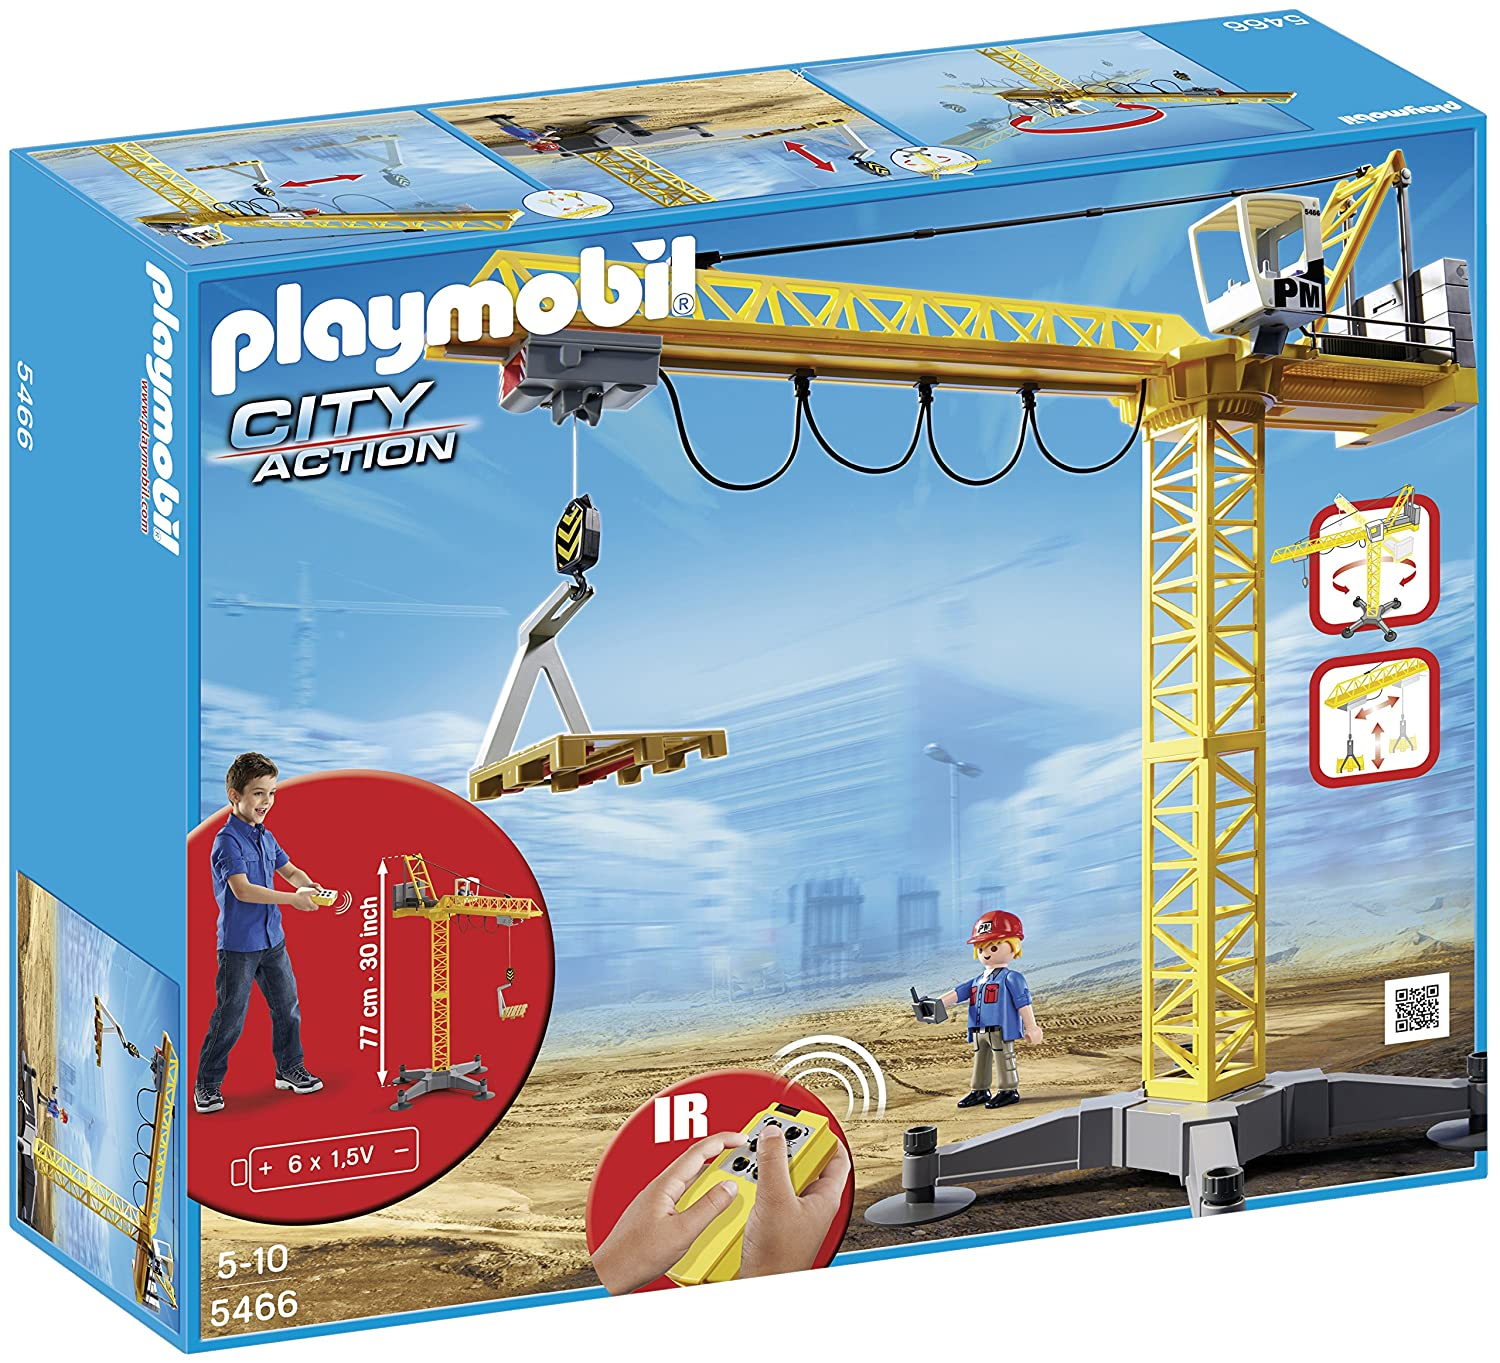 Playmobil 5466 City Action Large Construction Crane with Infra-Red Remote  Control - Multi-Coloured: Amazon.co.uk: Toys & Games